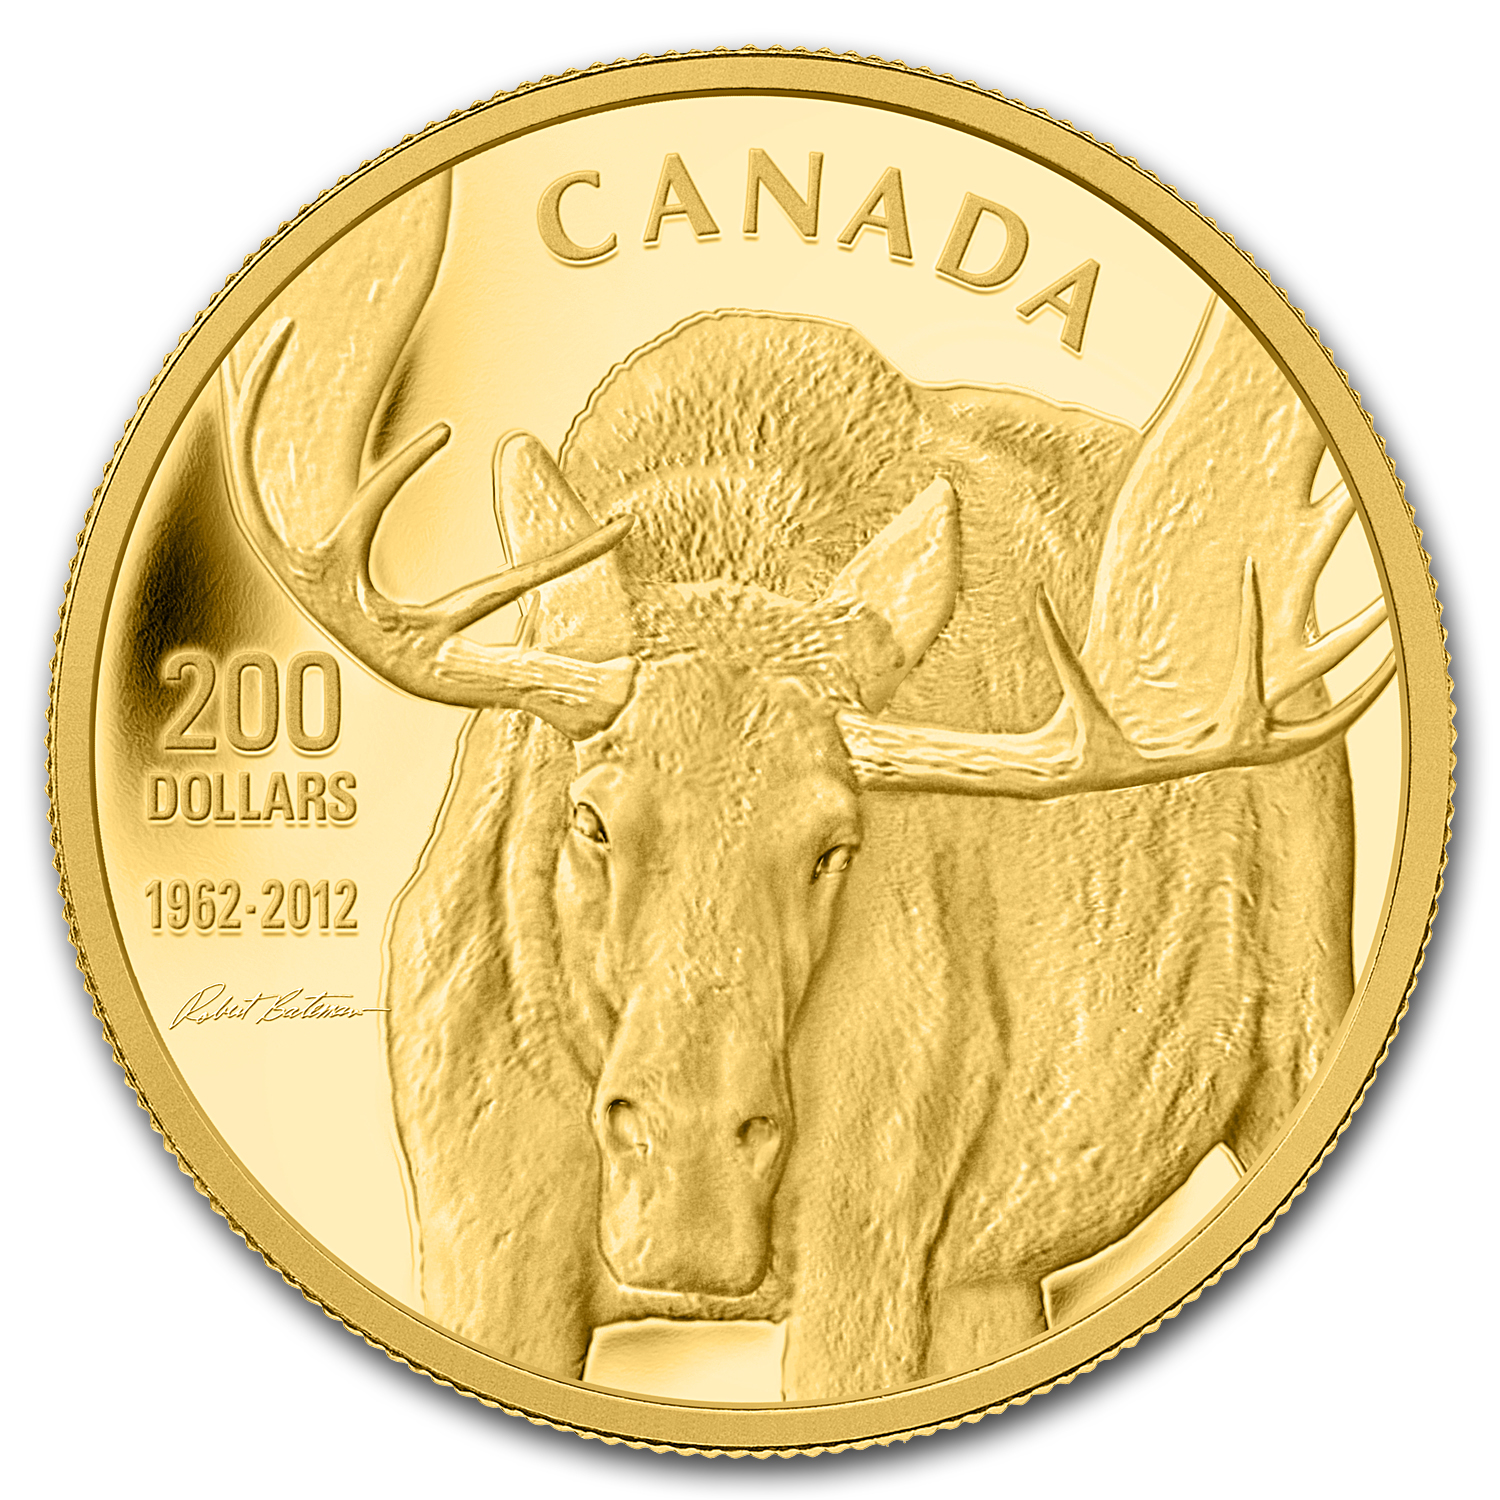 2012 1 oz Gold Canadian $200 Moose - Bateman's The Challenge